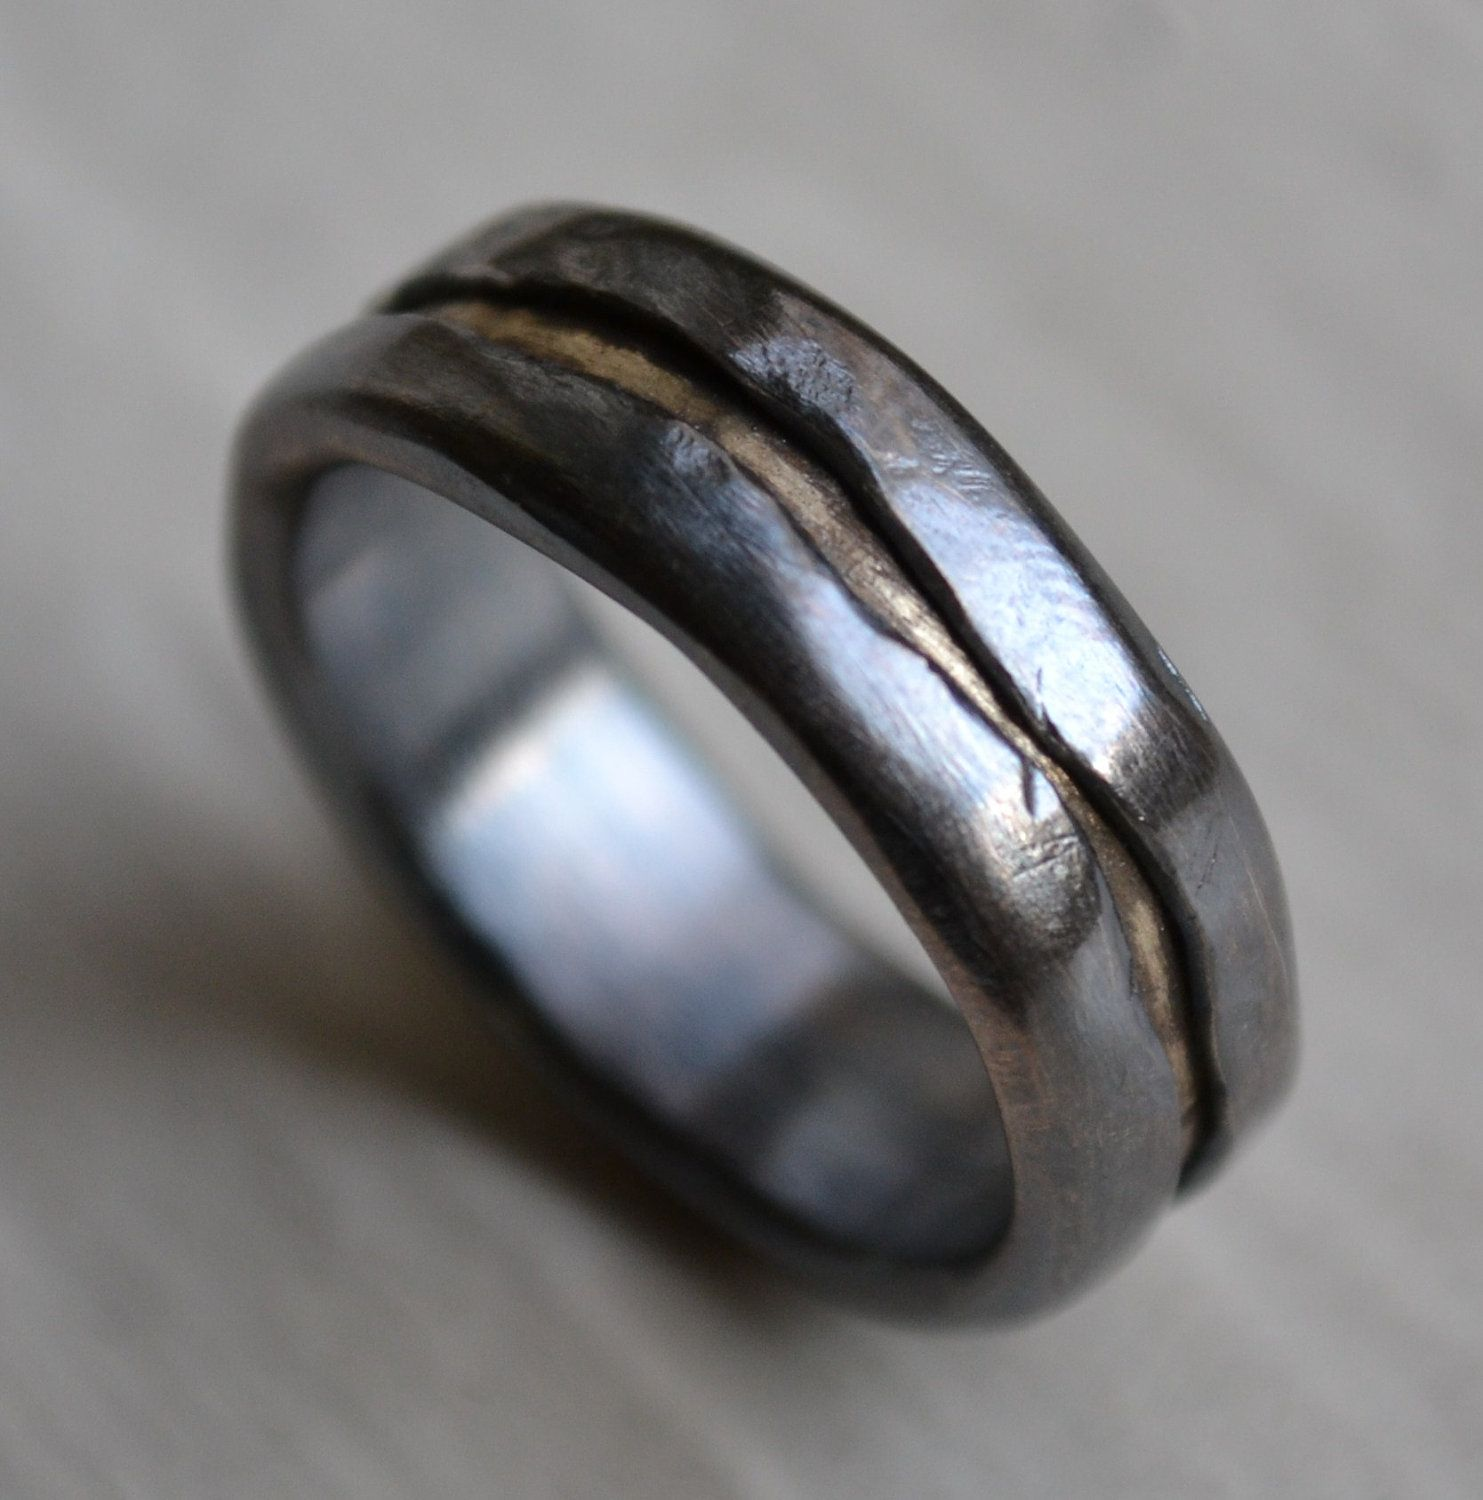 mens wedding band rustic fine silver and solid 14k yellow gold ring handmade oxidized artisan designed wedding band customized - Unique Wedding Rings For Men